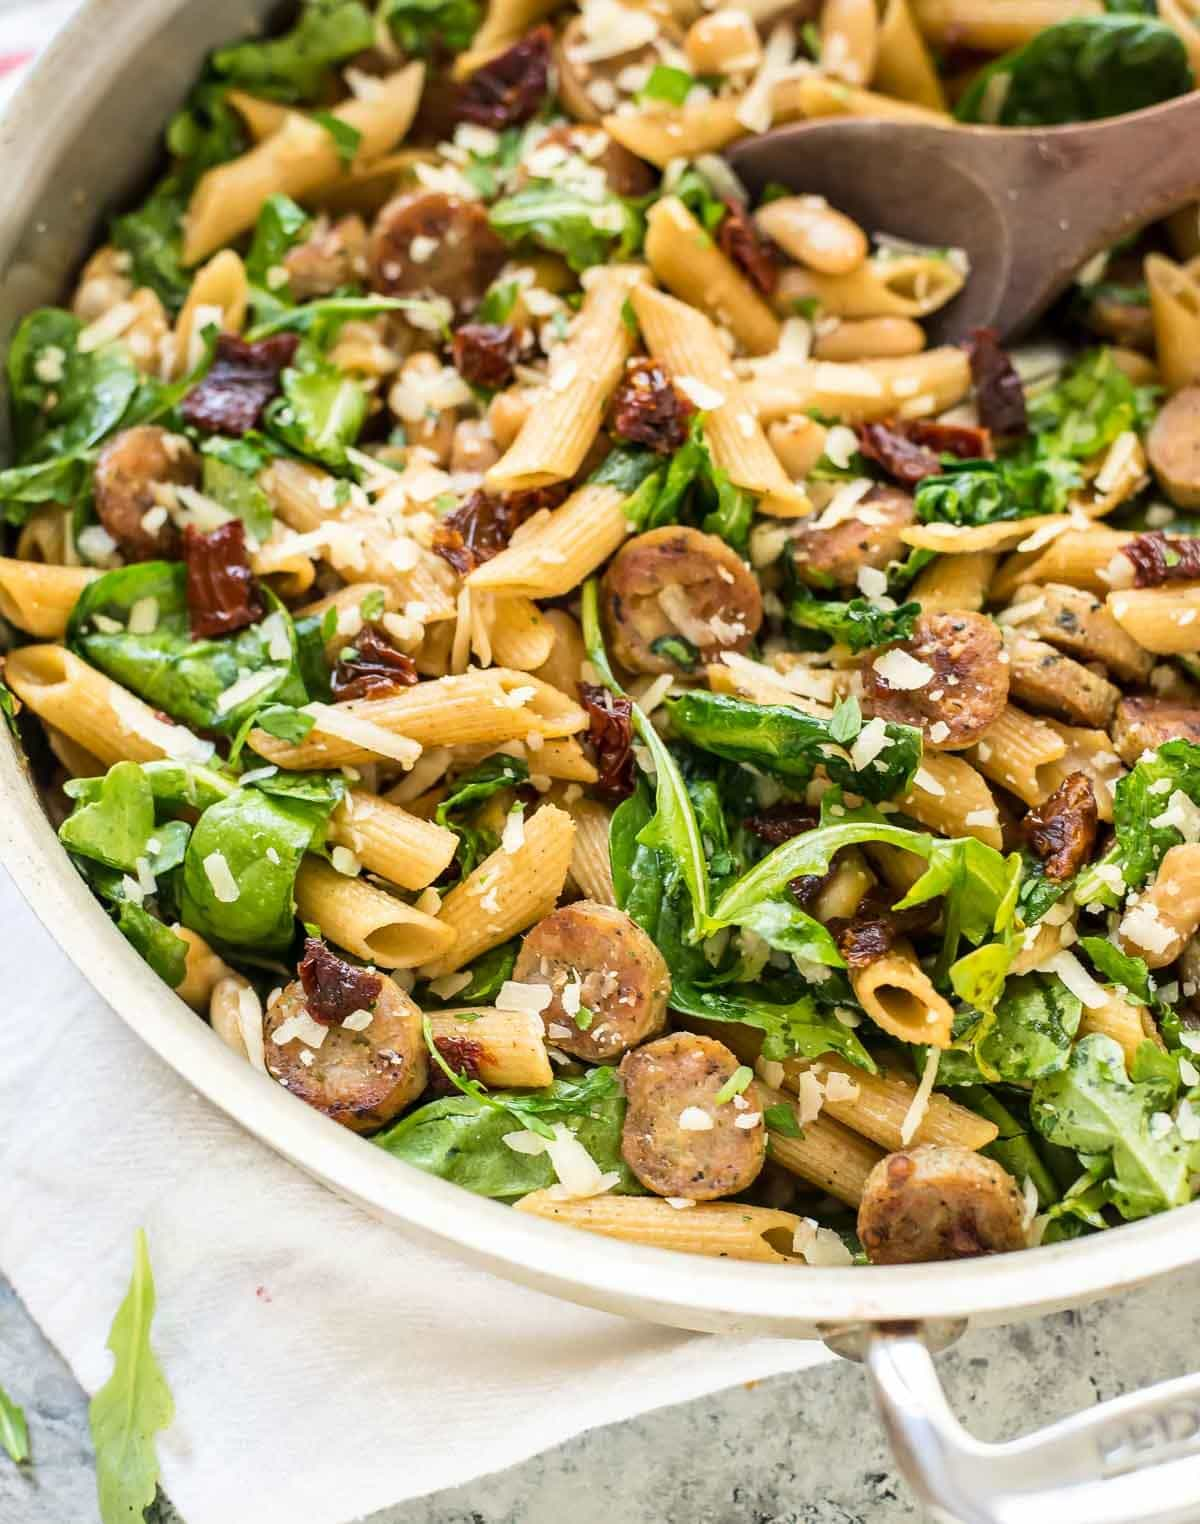 Sun Dried Tomato Pasta with Chicken Sausage, Spinach, and White Beans ...